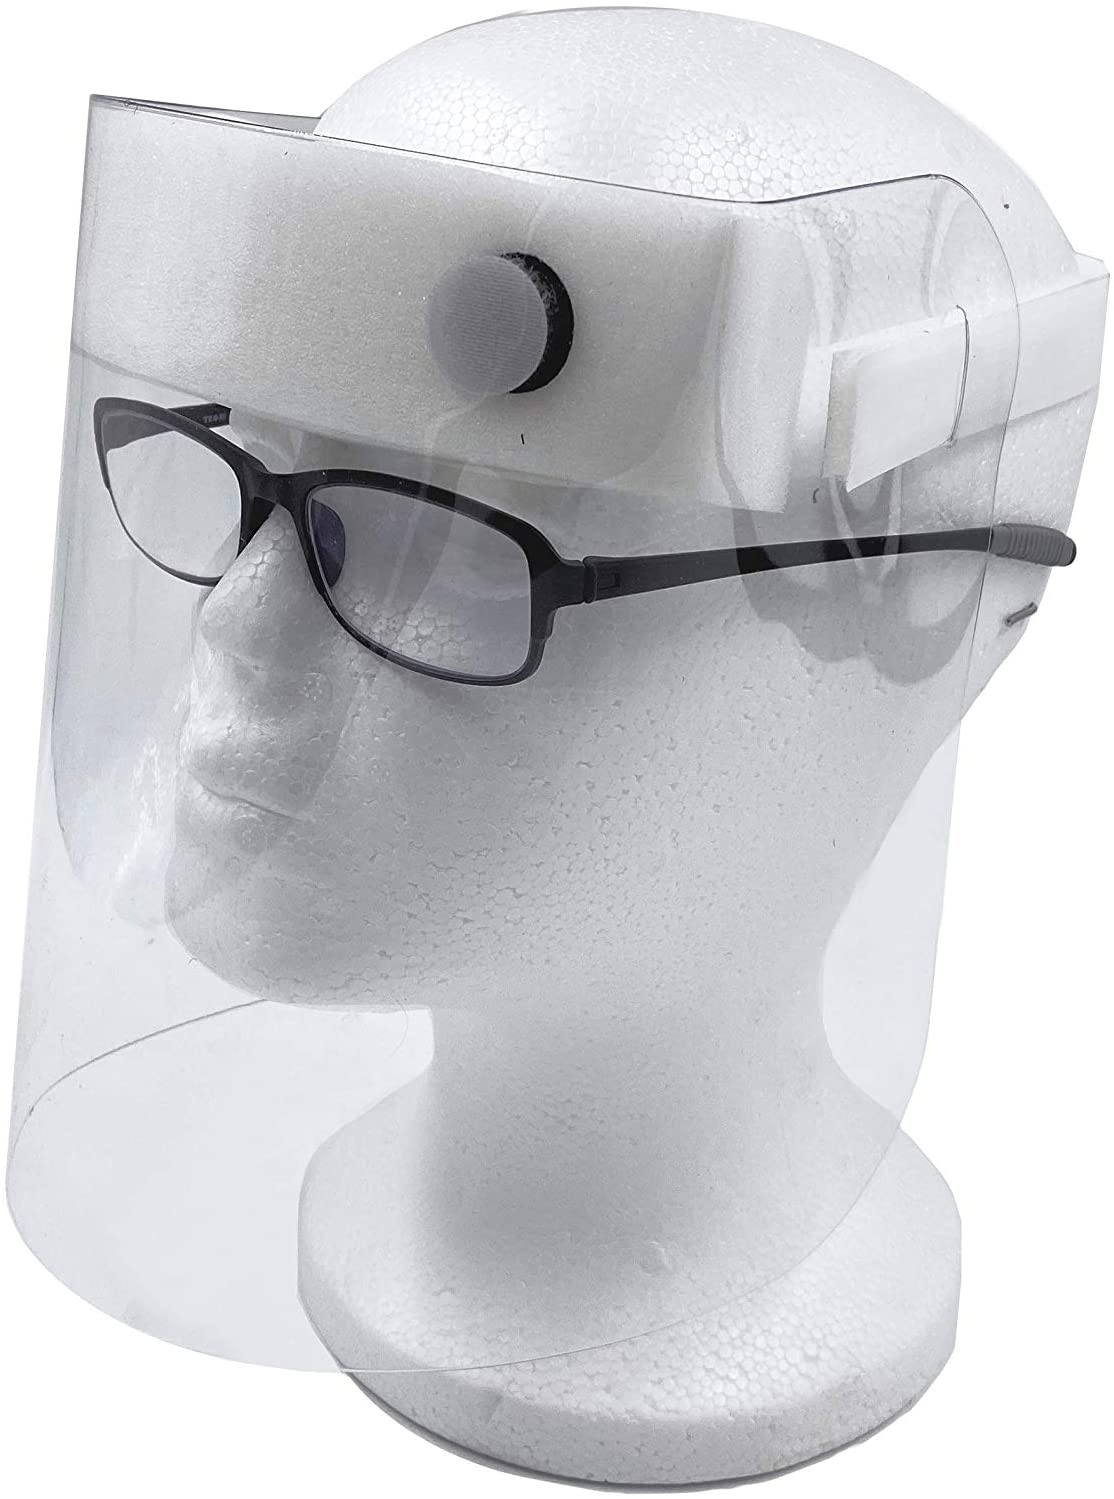 LAMINET Clear Protective Face Shield w/Adjustable Strap for Custom Fit, Reusable & Washable - Pack of 1 | MADE IN THE USA